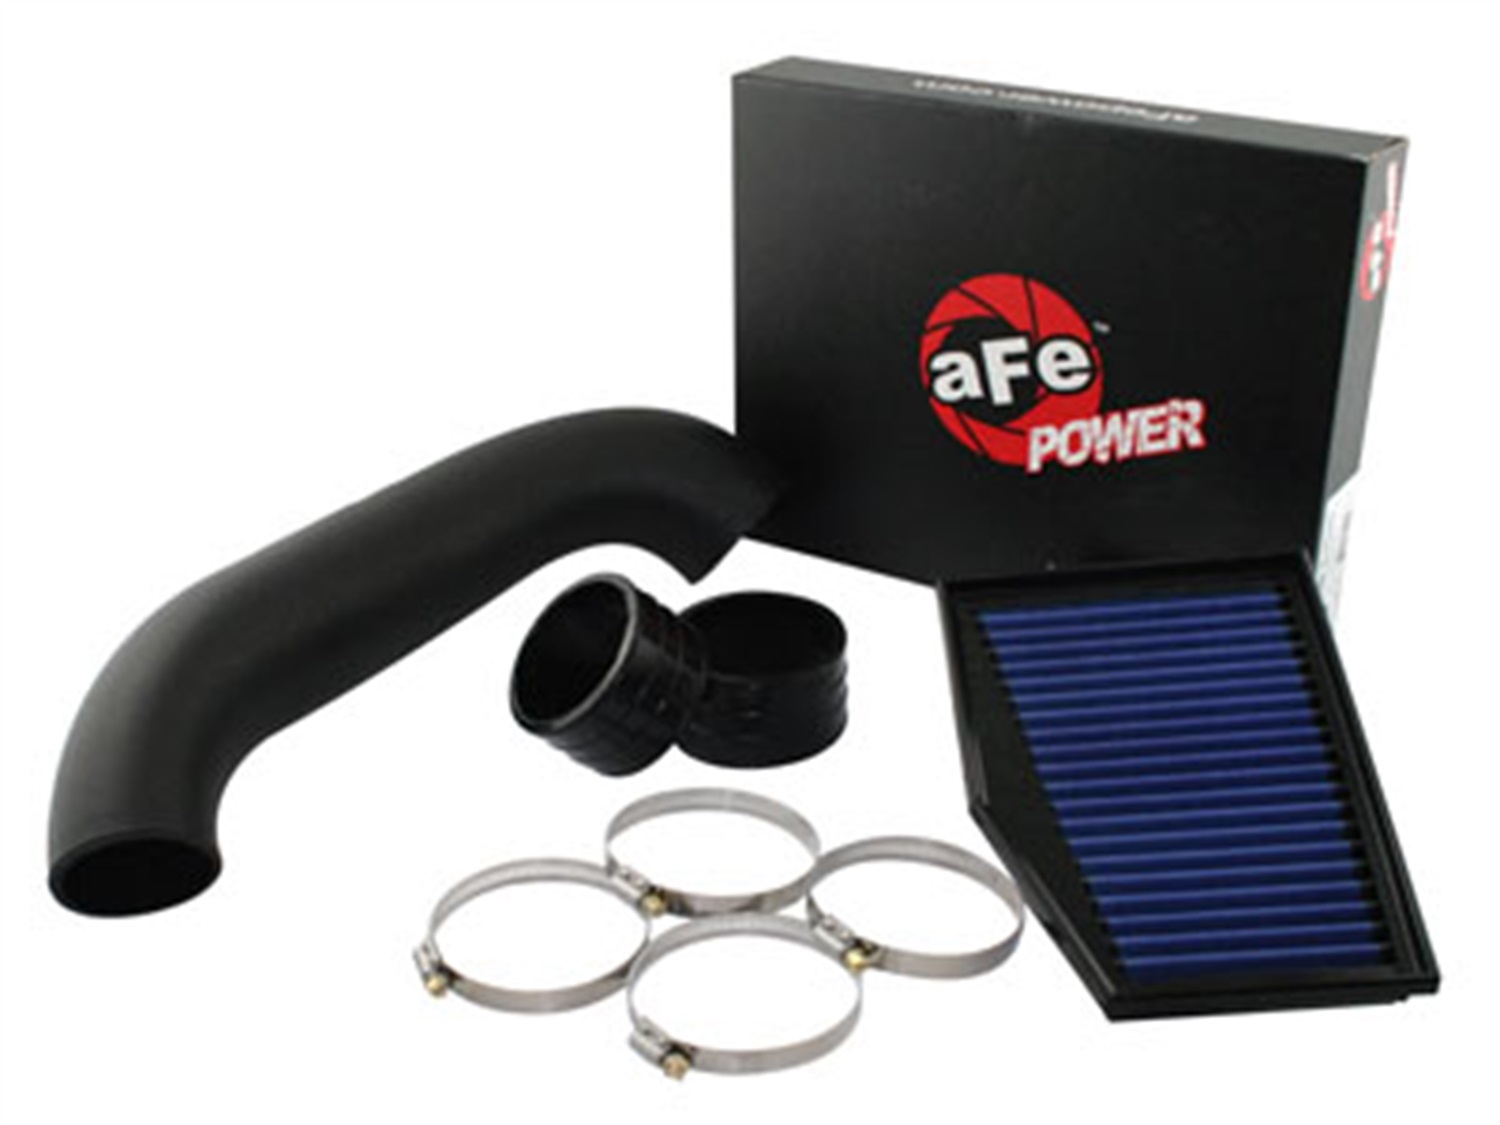 aFe Power 55-10720 MagnumFORCE Super Stock PRO 5R Intake System Fits Boxster 55-10720